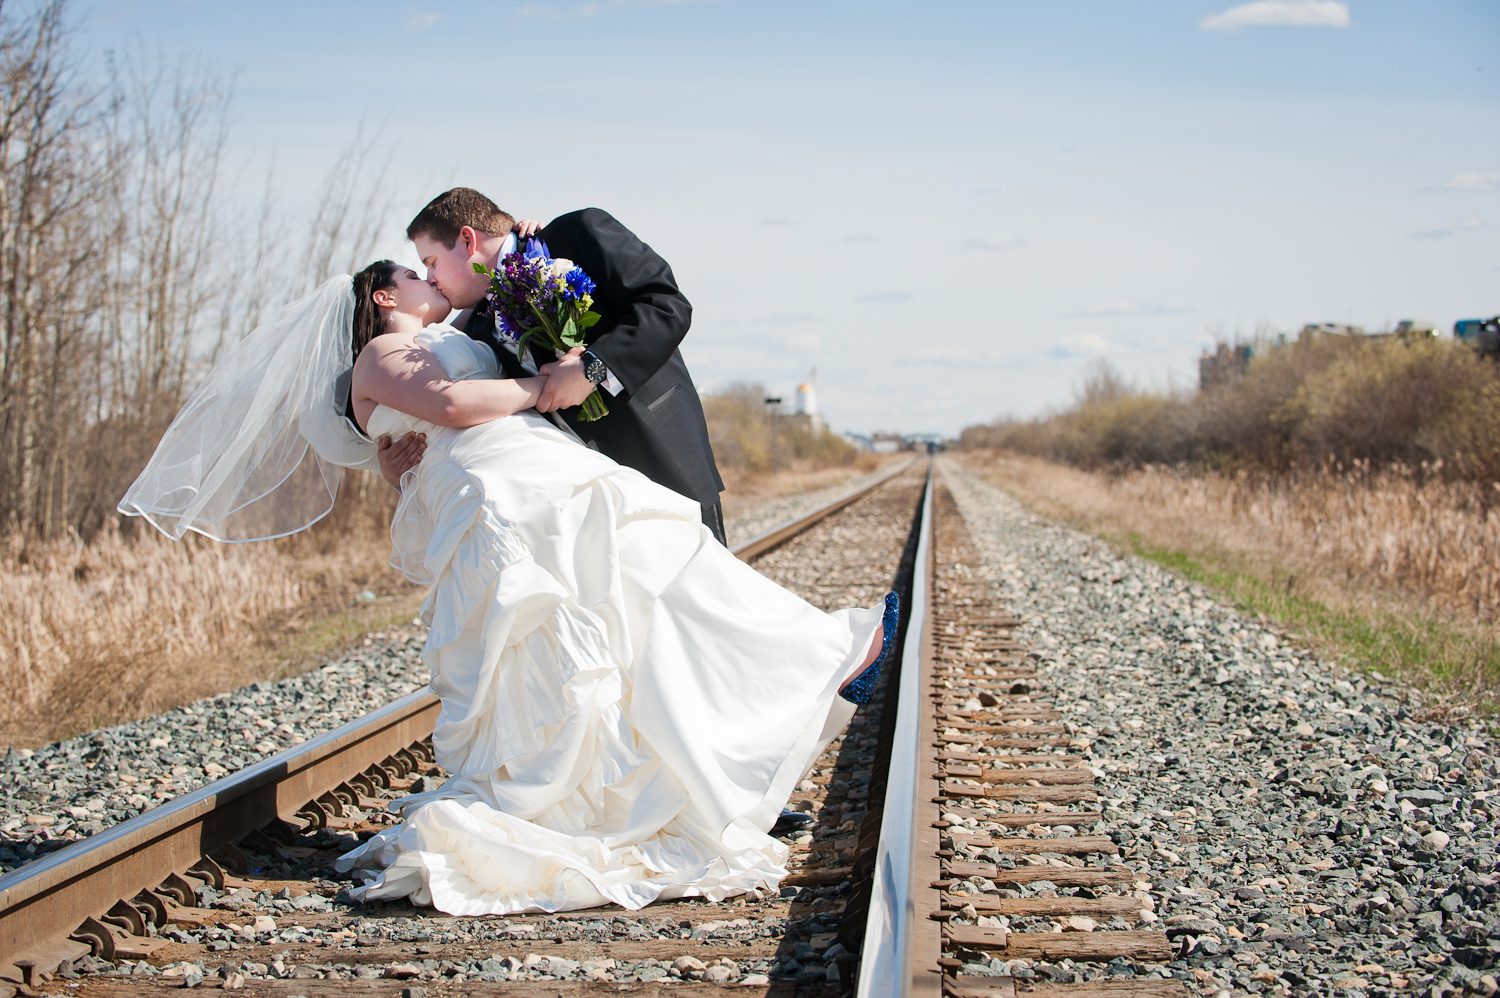 sean-williams-wedding-lifestyle-photography-edmonton-photographer-professional-4.jpg